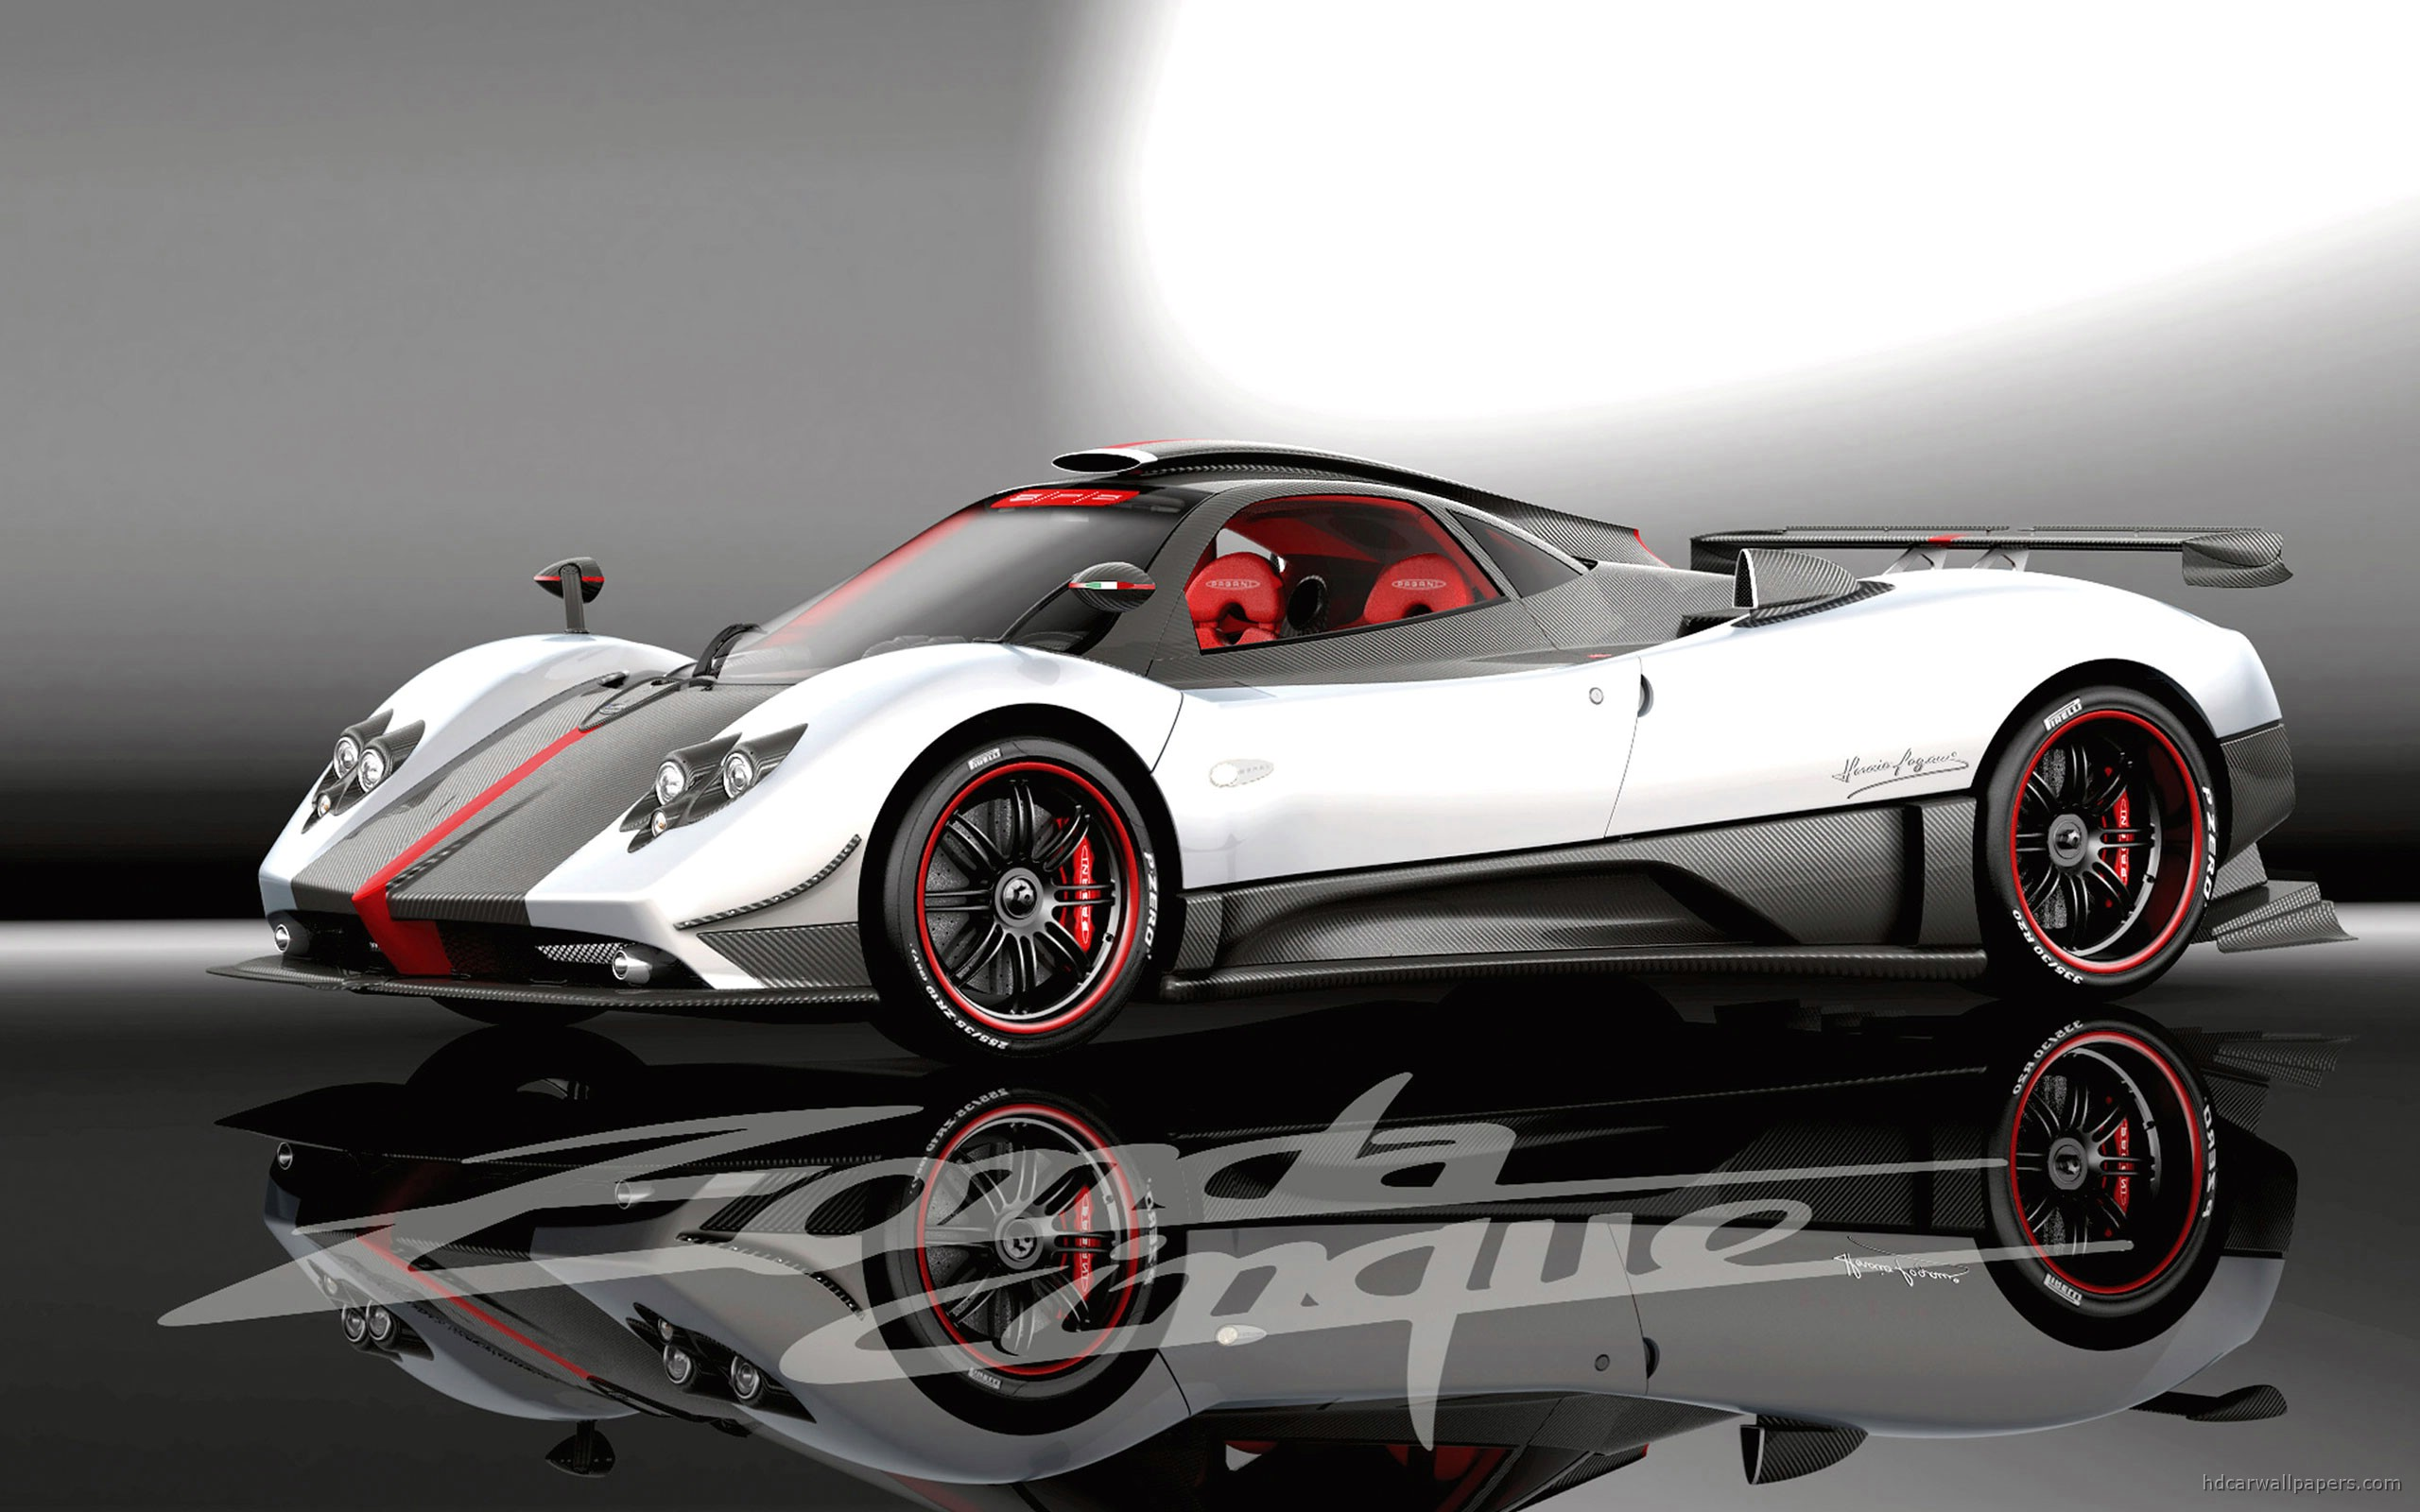 ... - Pagani Zonda R Hd Wallpapers Auto Car Wallpapers Backgrounds 13724